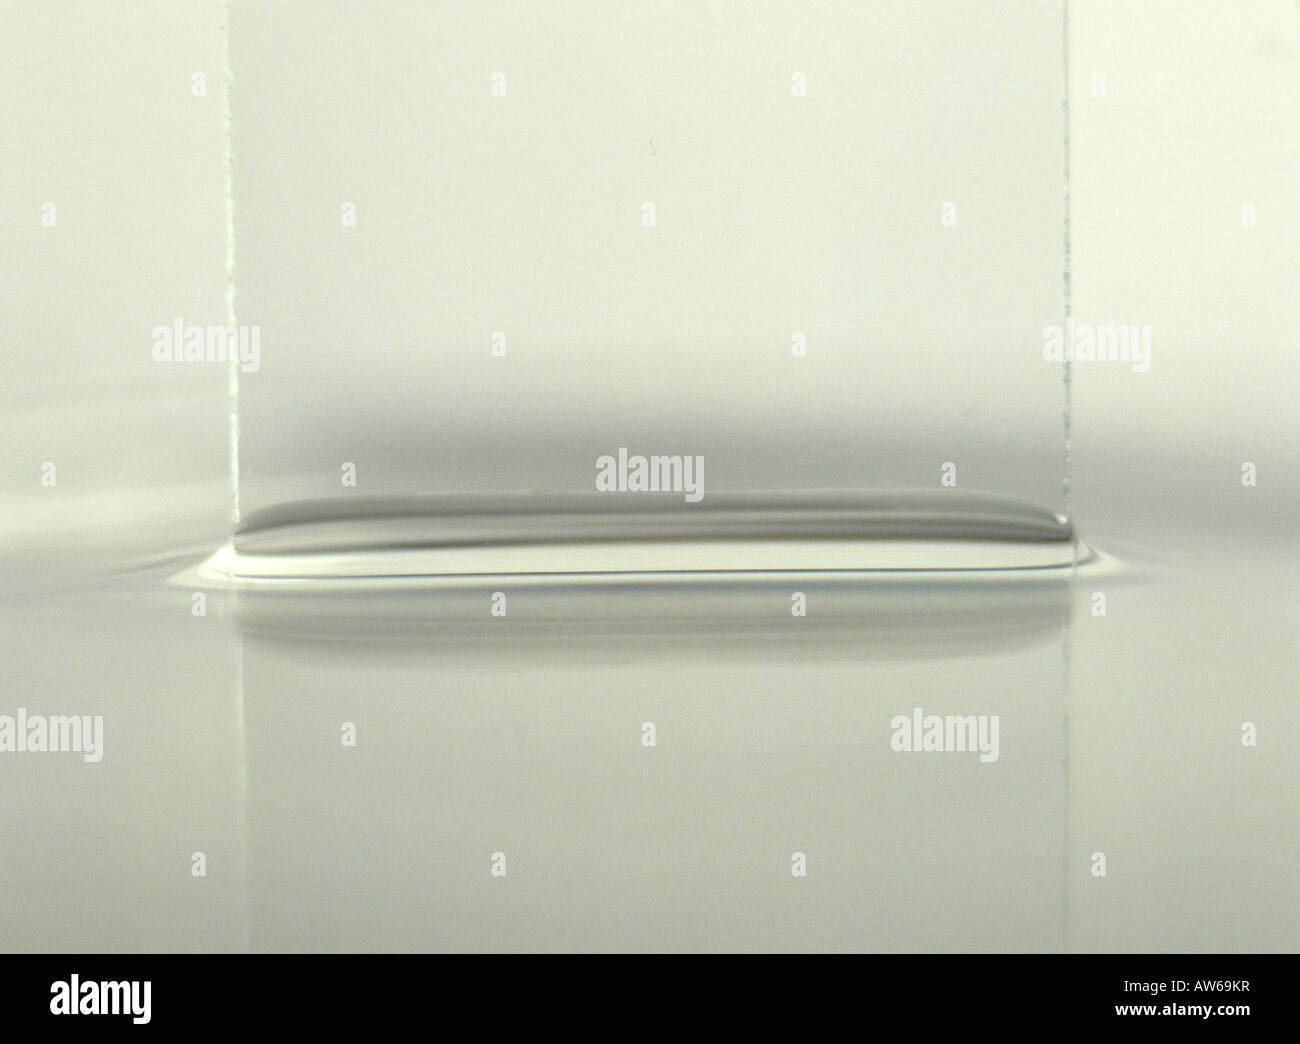 capillary rise of water against a glass slide - Stock Image